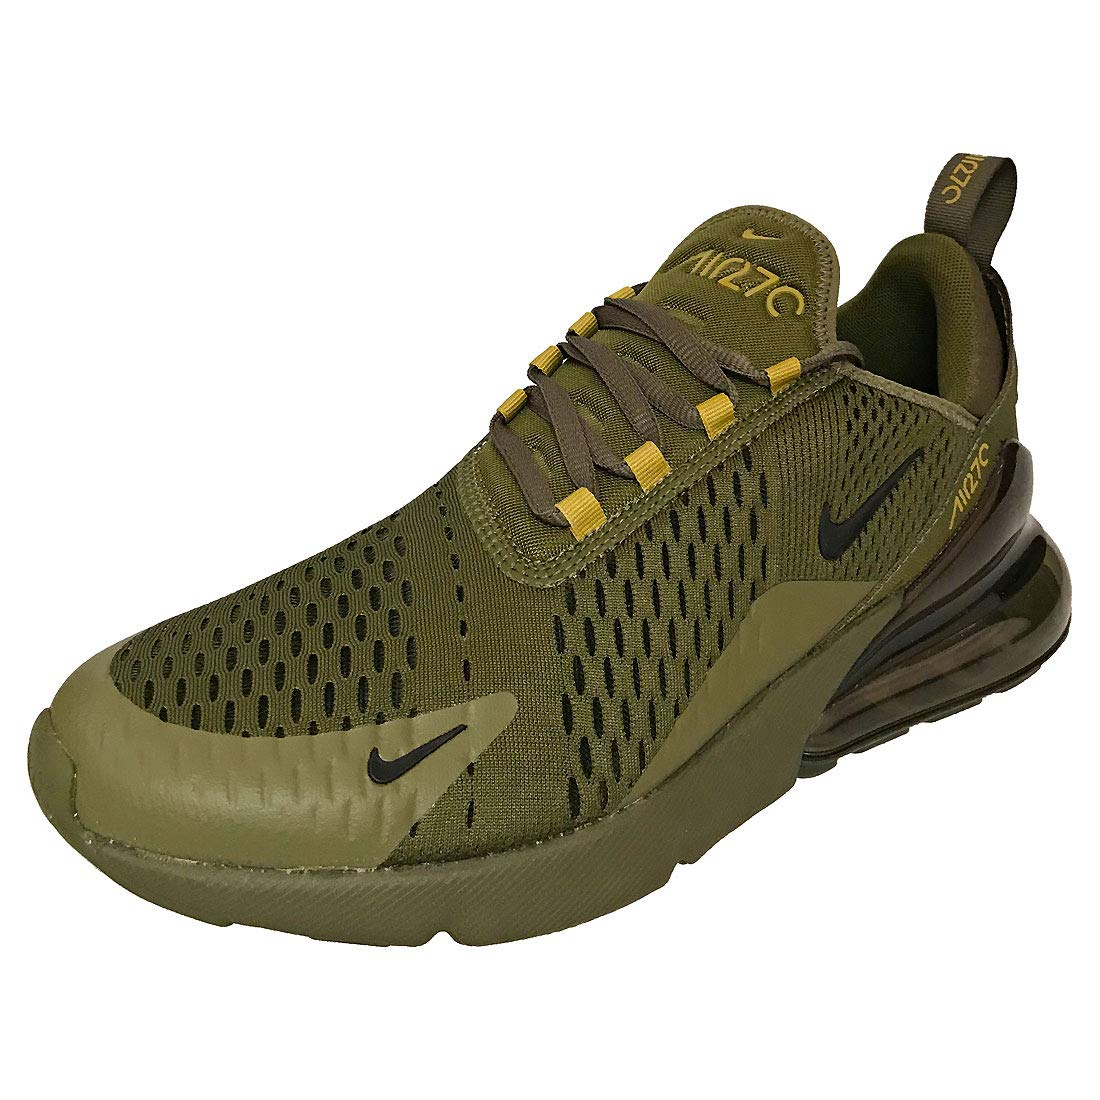 size 40 6e75a 1a8b2 Nike Men's Air Max 270 Fitness Shoes